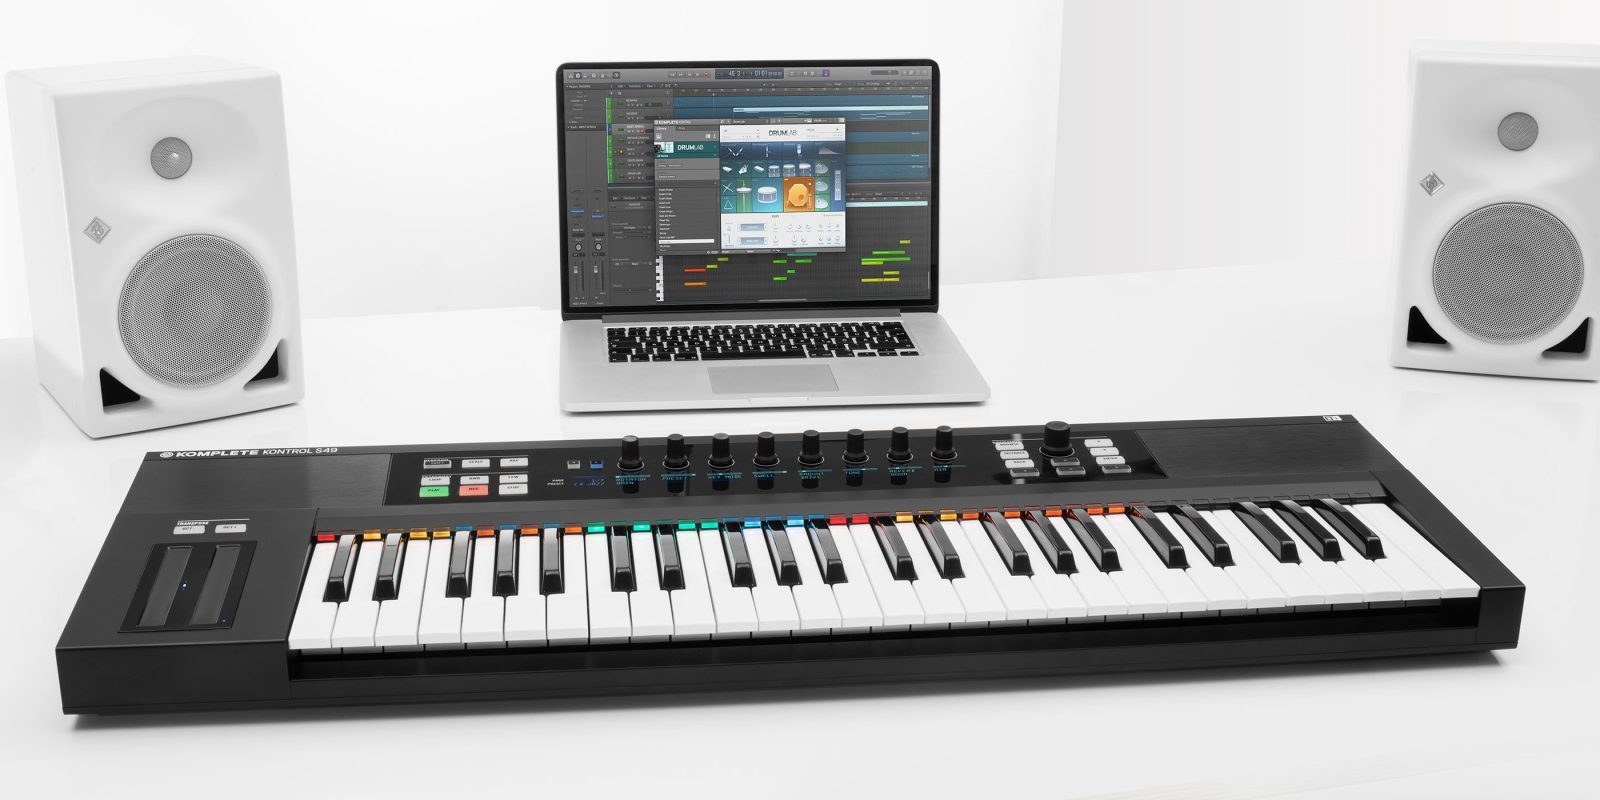 The Best Midi Keyboards For Mac And Logic Pro 9to5mac